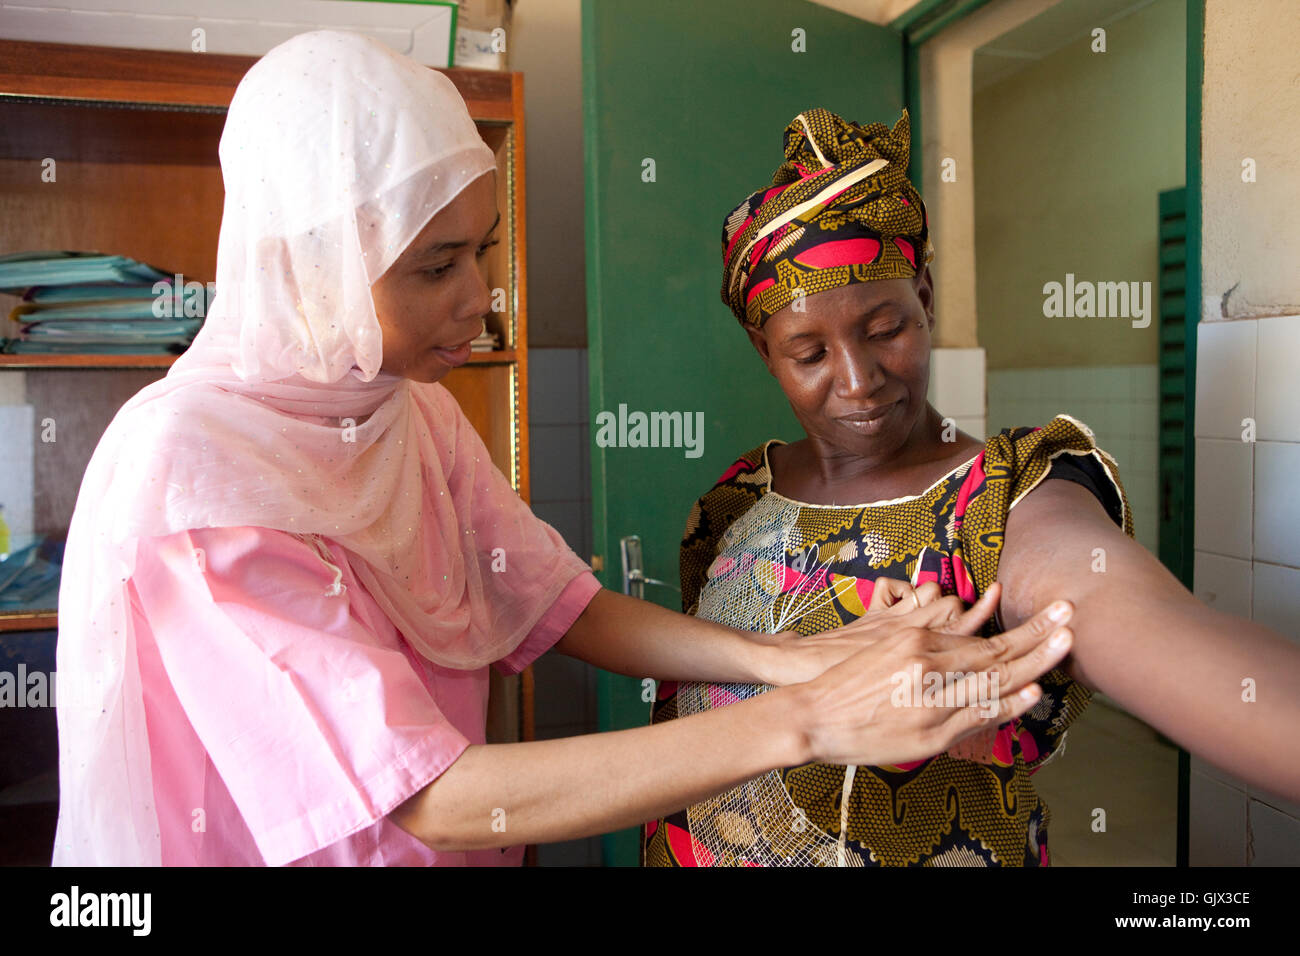 A midwife installs a contraceptive or hormonal implant in the arm of a woman in Bamako, Mali, West Africa. - Stock Image